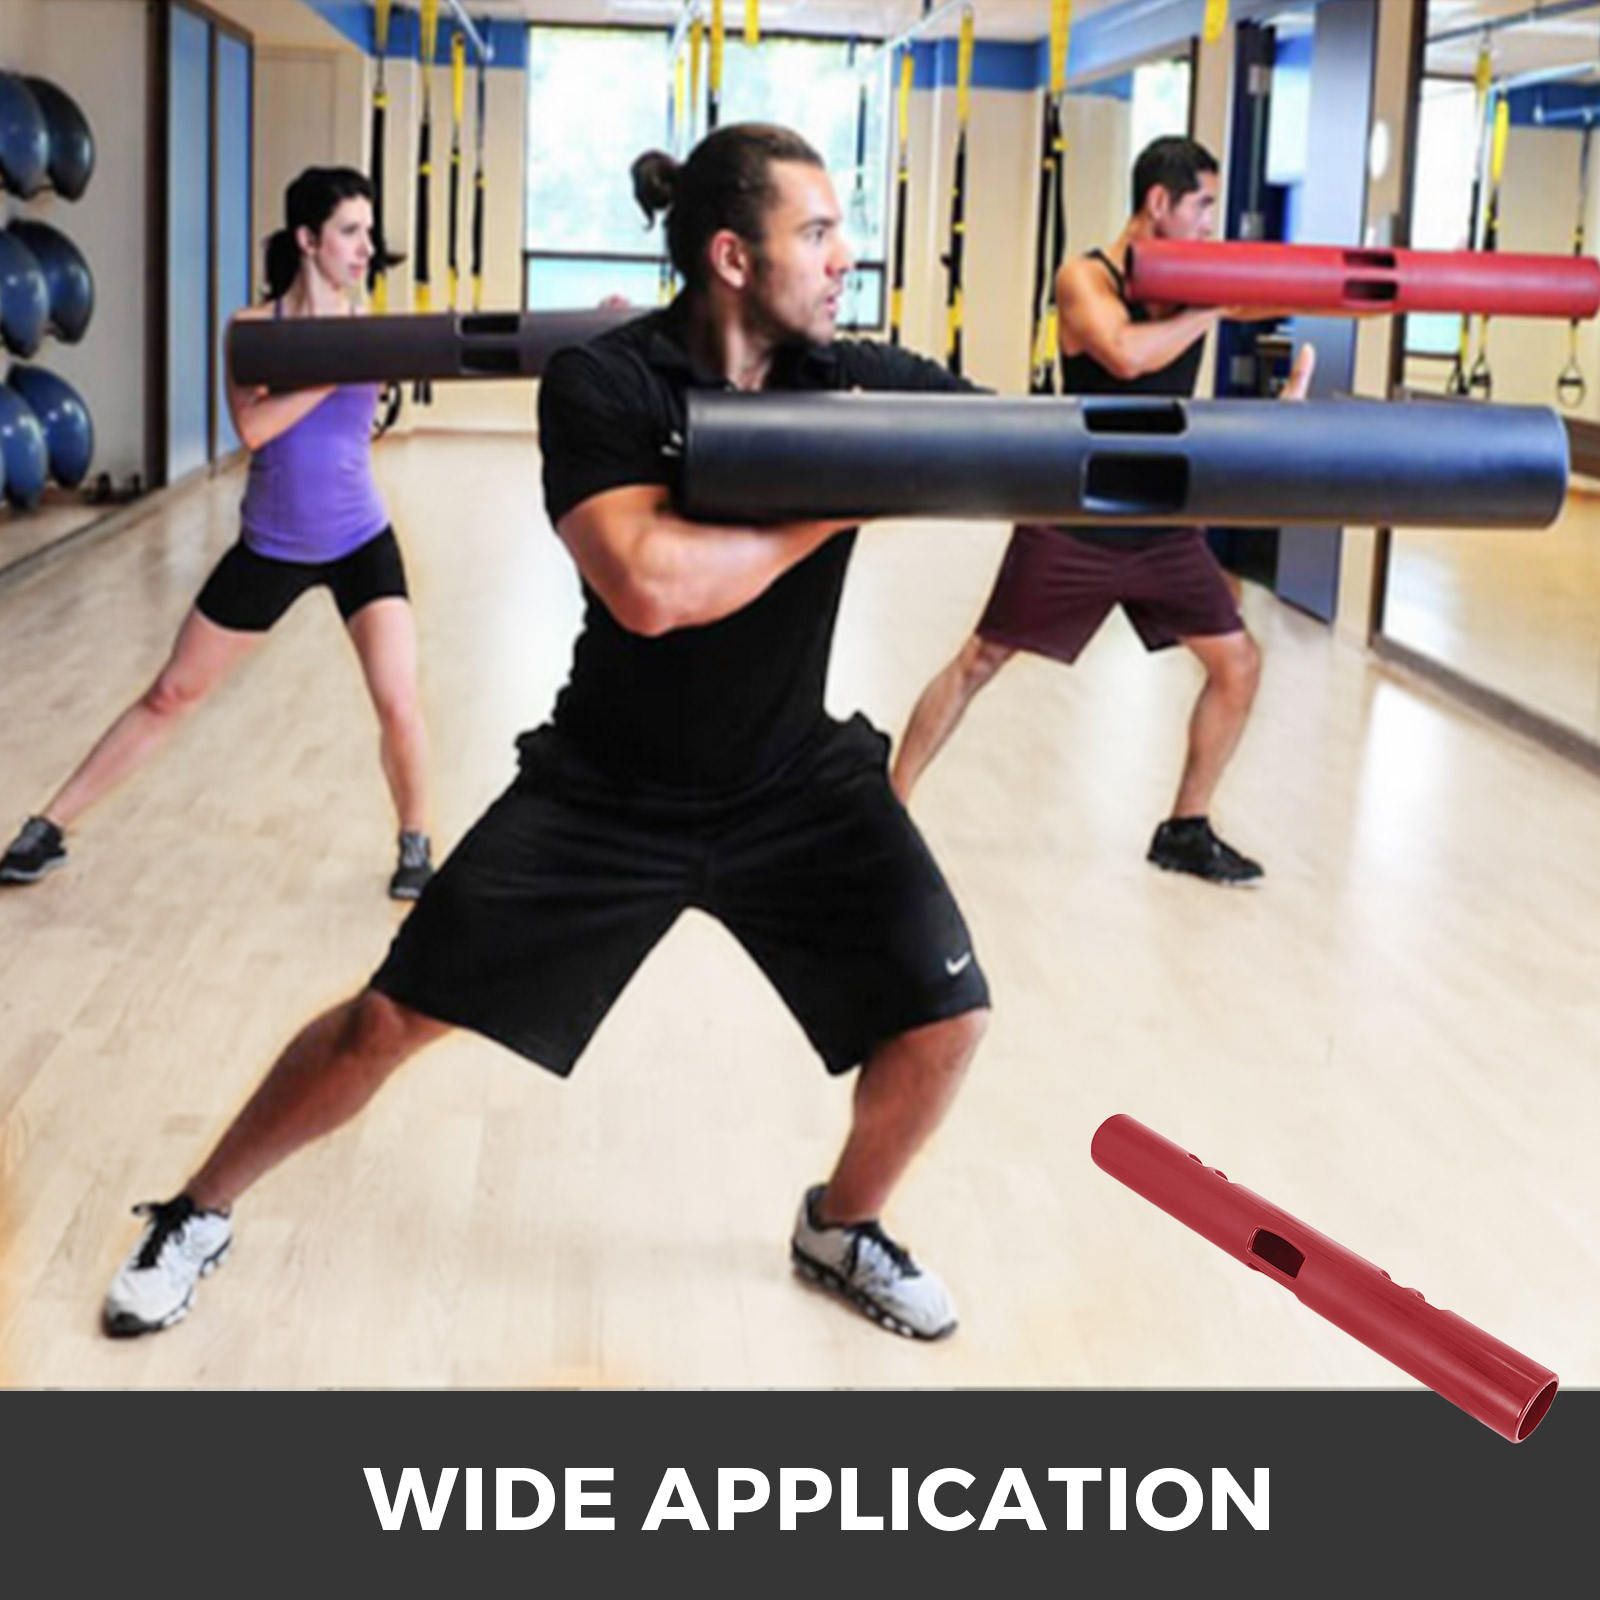 Vipr-Fitpro-Fitness-Tube-Loaded-Movement-Training-weightlifting-4-6-8-10-12-Kg thumbnail 79